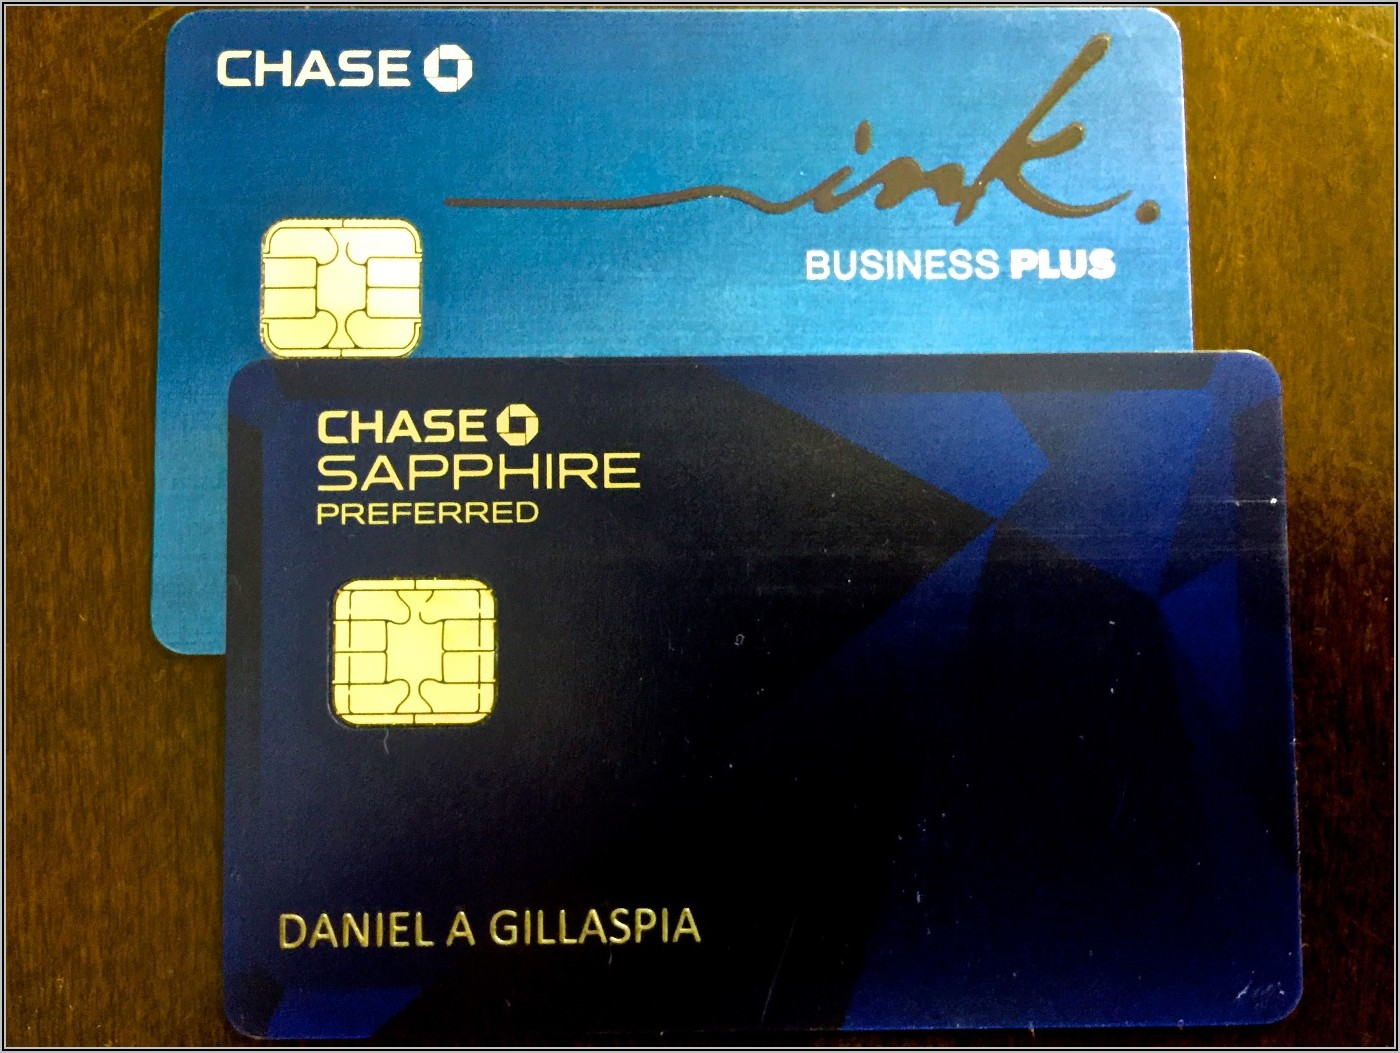 Chase Business Debit Card Activation